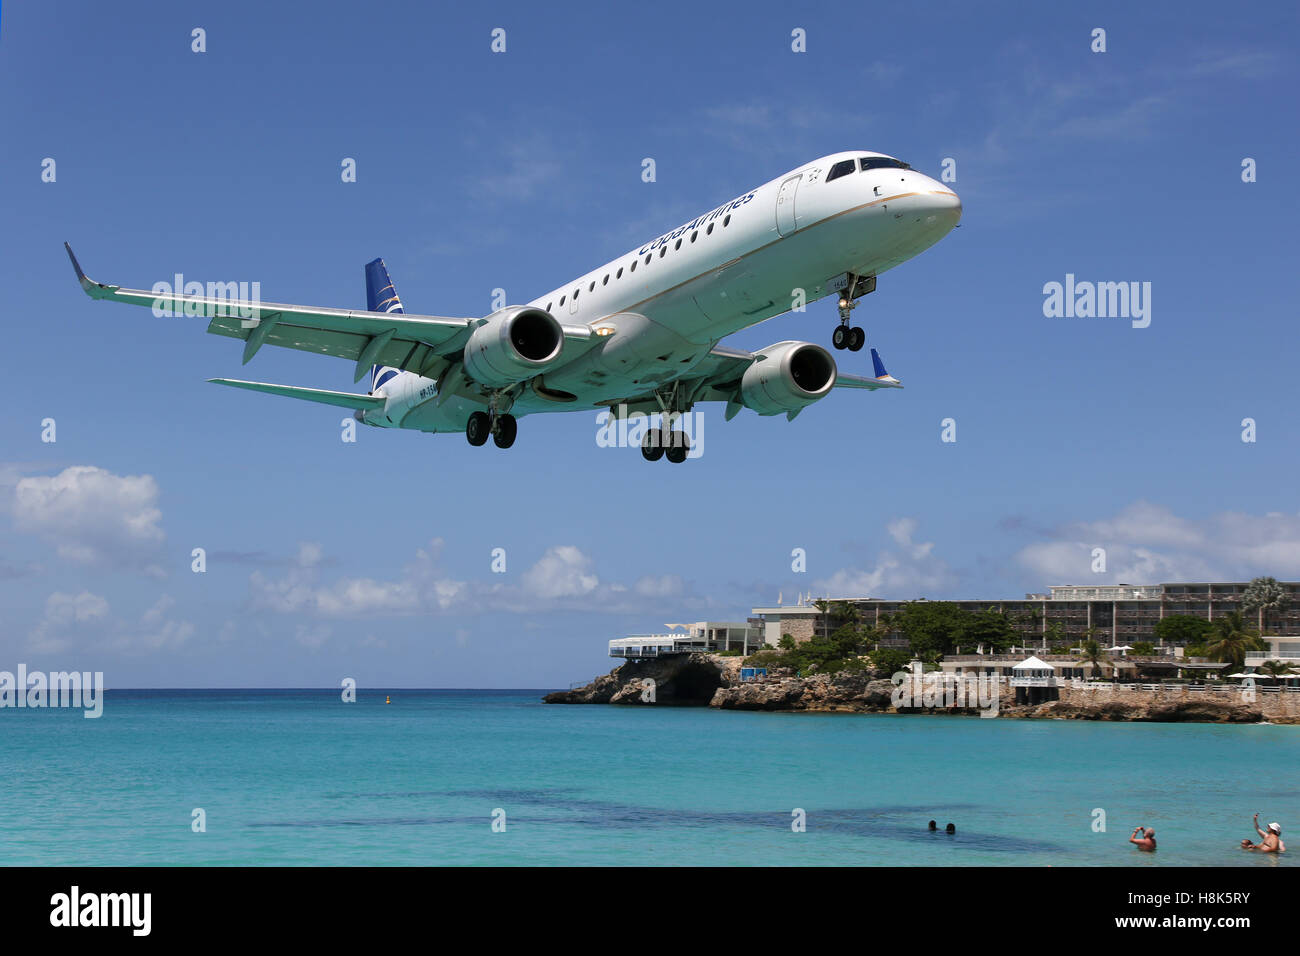 Sint Maarten, Netherlands Antilles - September 20, 2016: A Copa Airlines Embraer ERJ190 with the registration HP - Stock Image